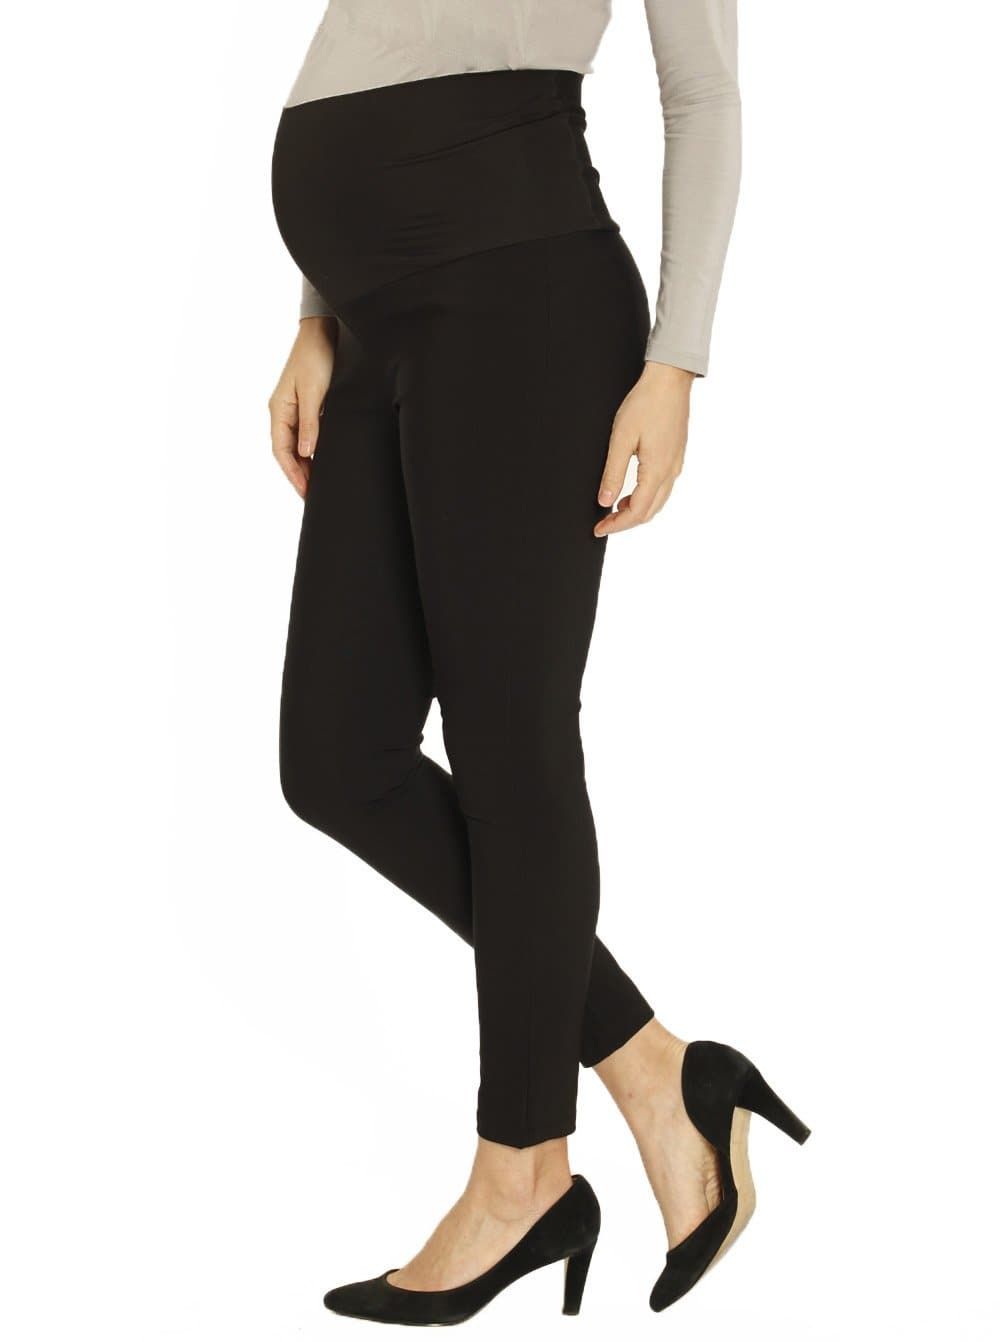 Angel Maternity Fitted Work Pants in Black - Best Seller